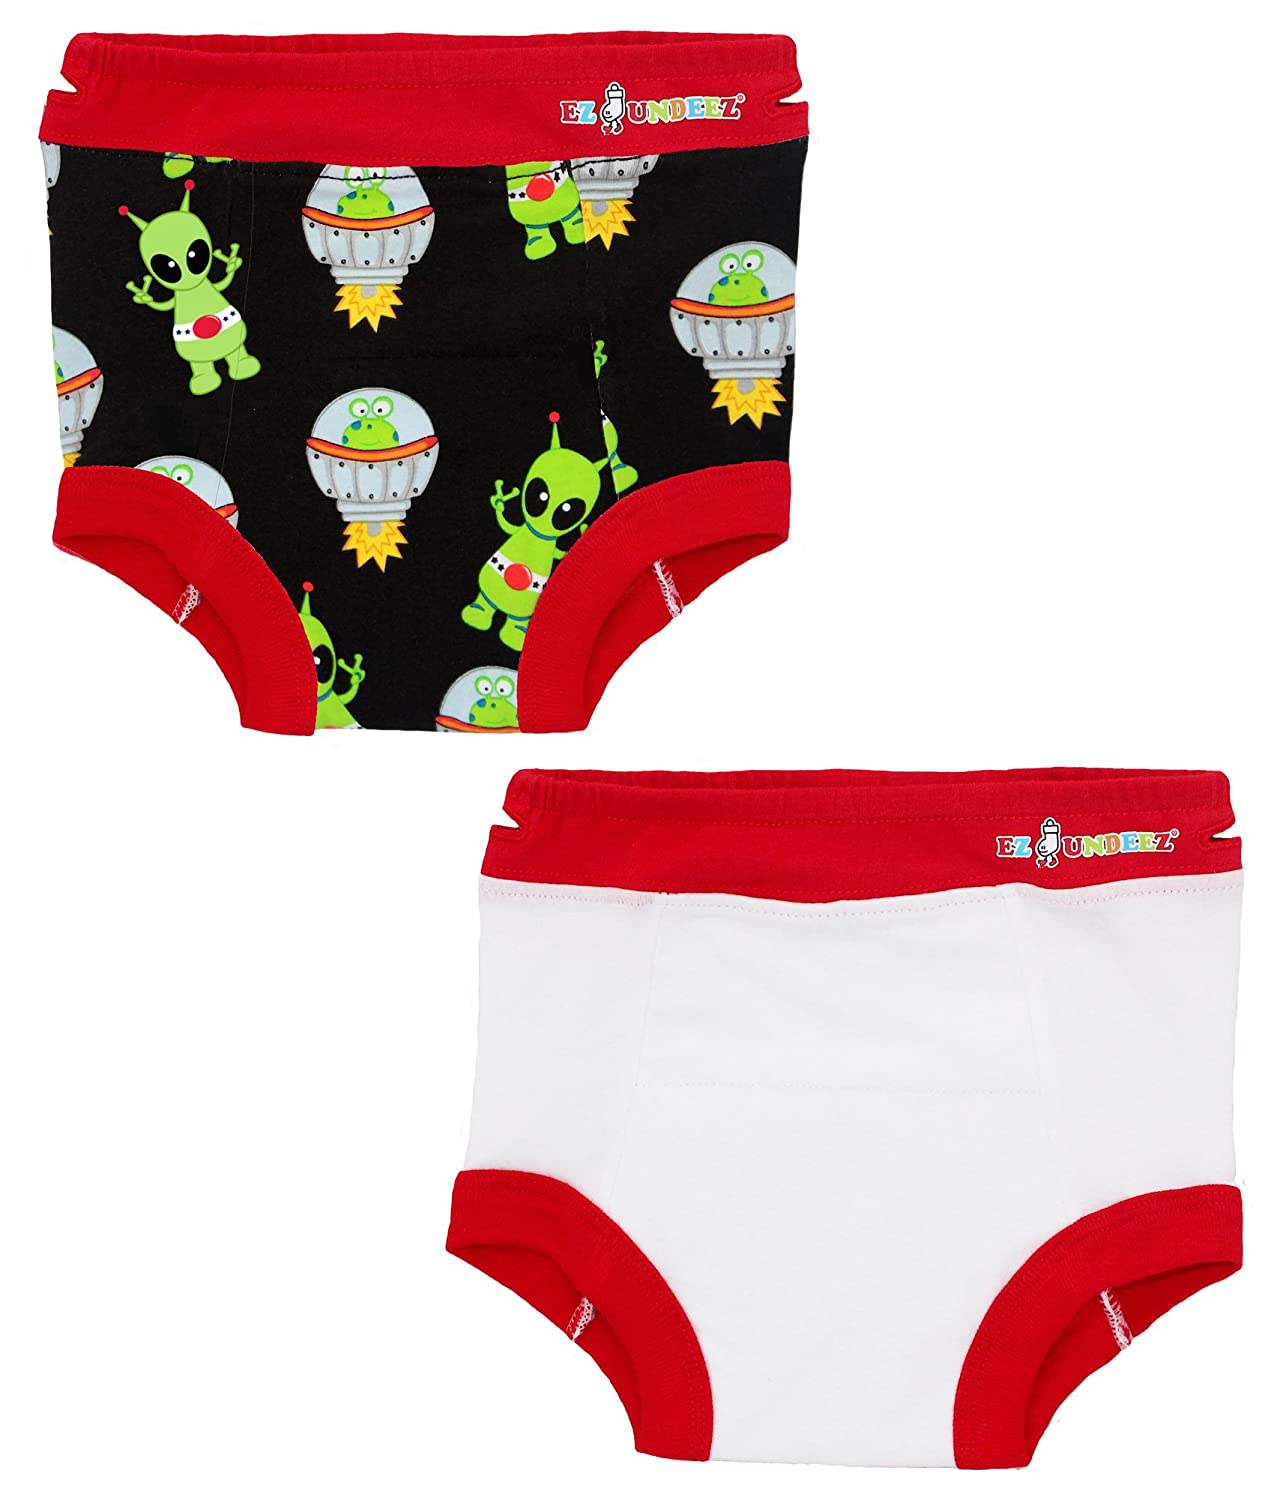 Ez Undeez Toddler Underwear Boys Girls Padded Potty Training Pants Easy Pull Ups